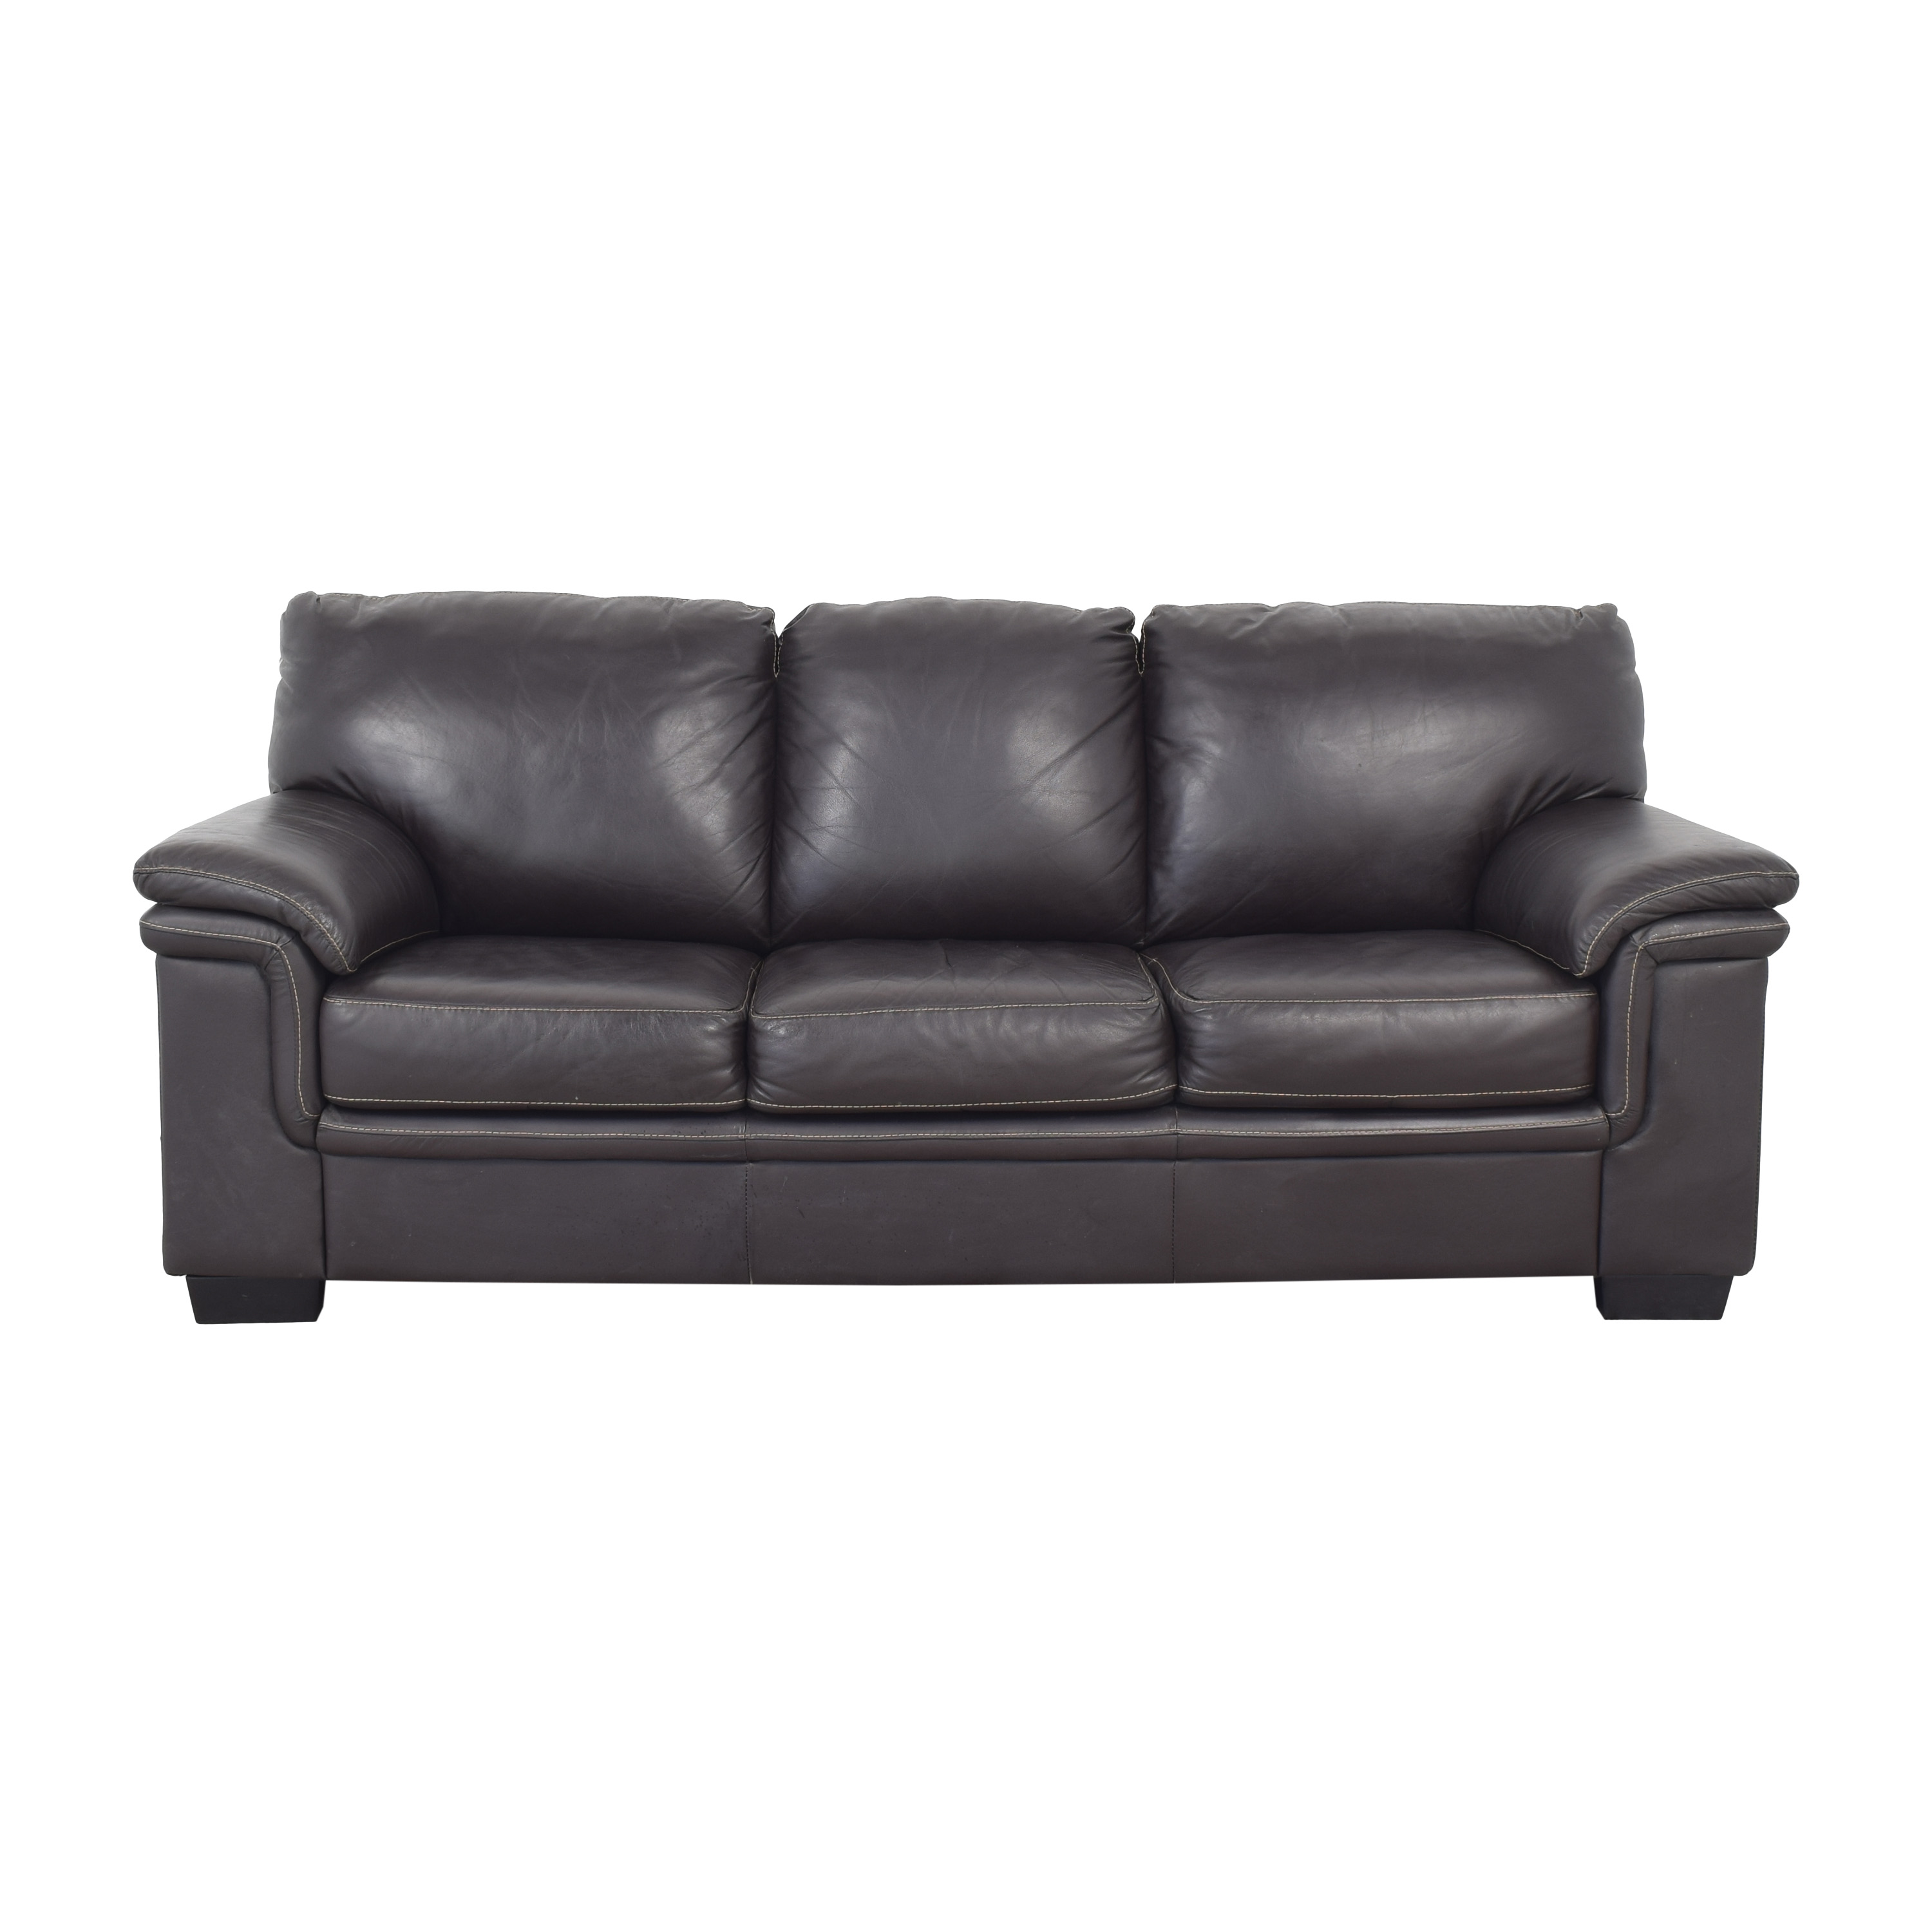 Fortunoff Fortunoff Three Cushion Sofa coupon